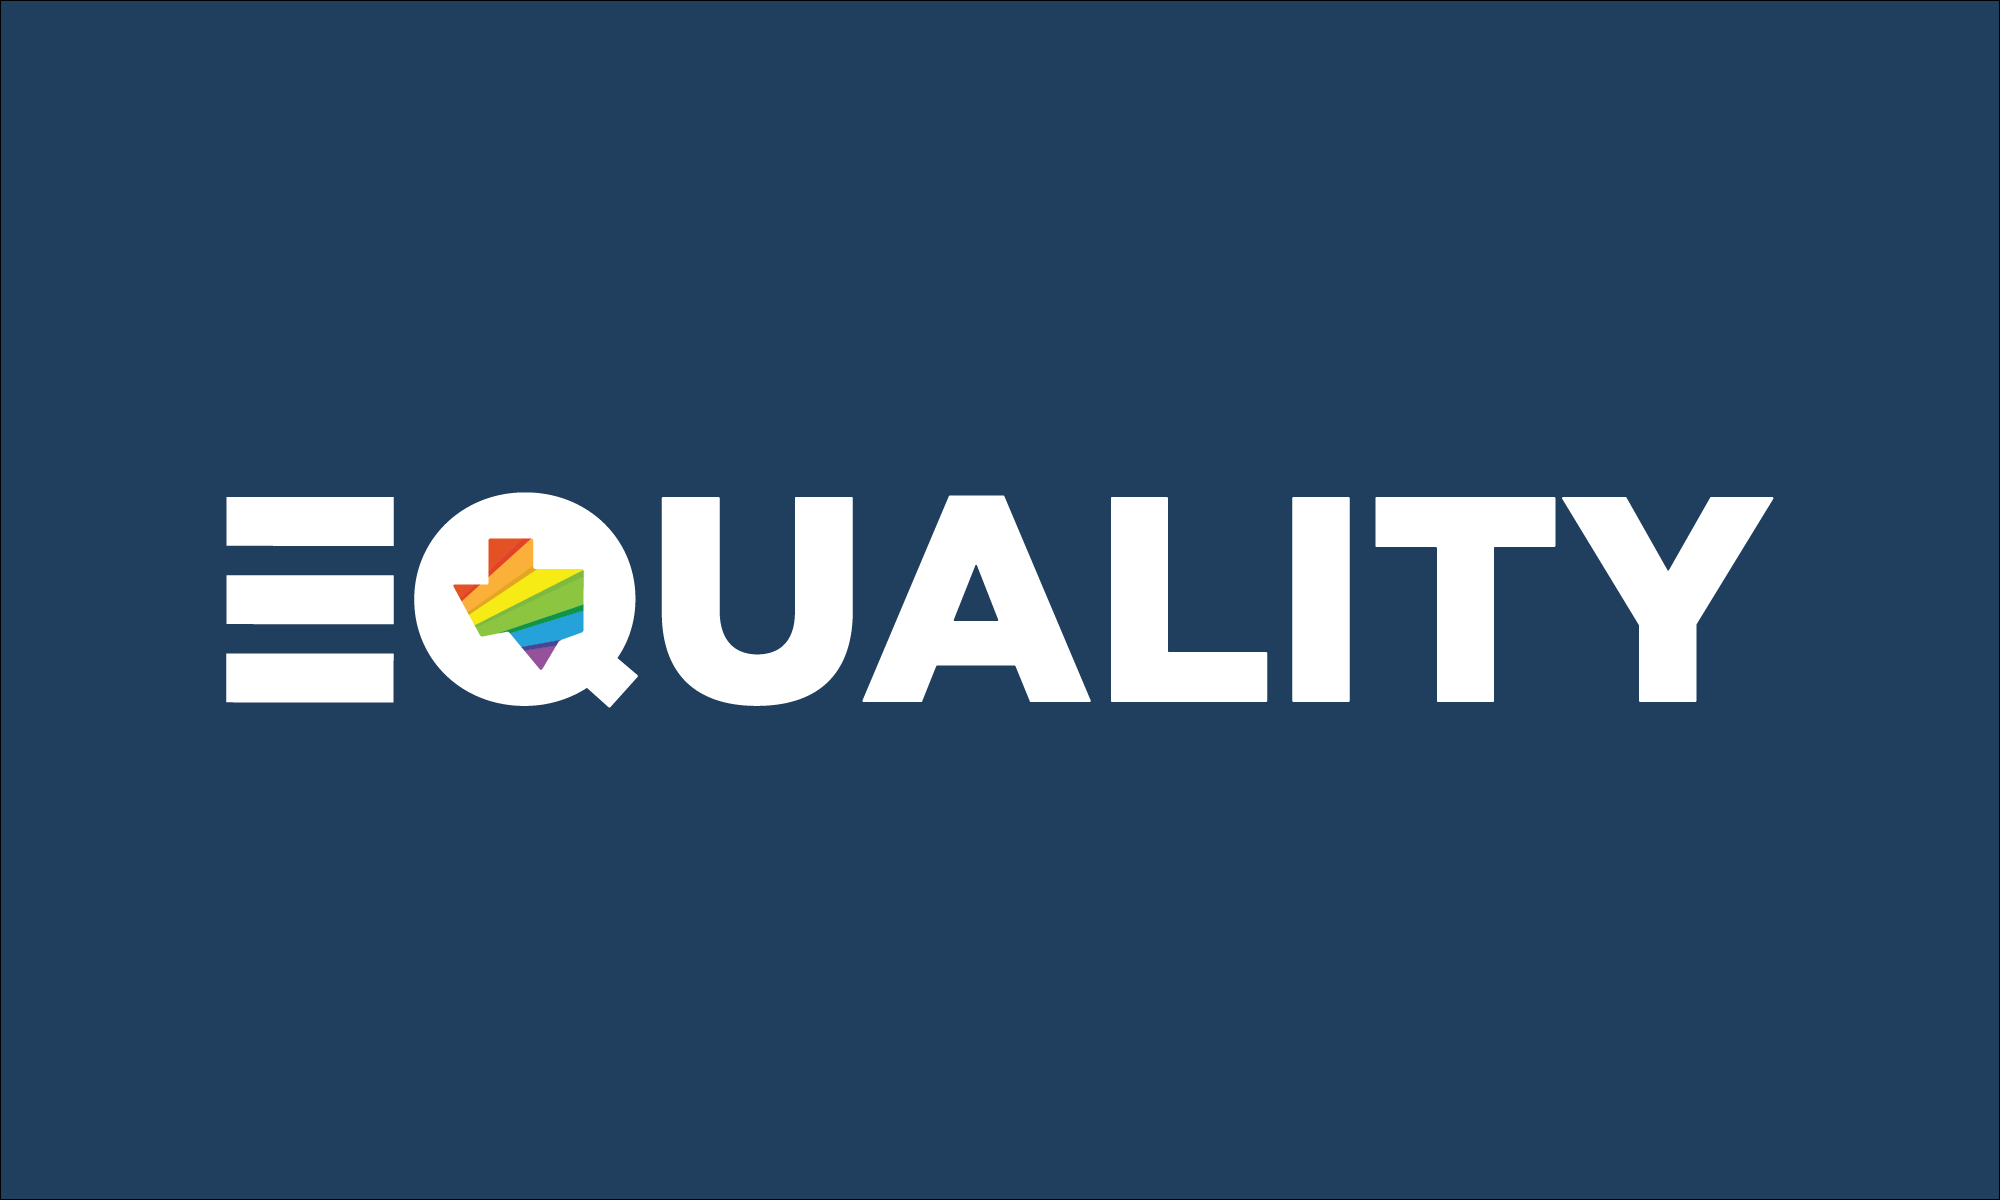 equality texas logo